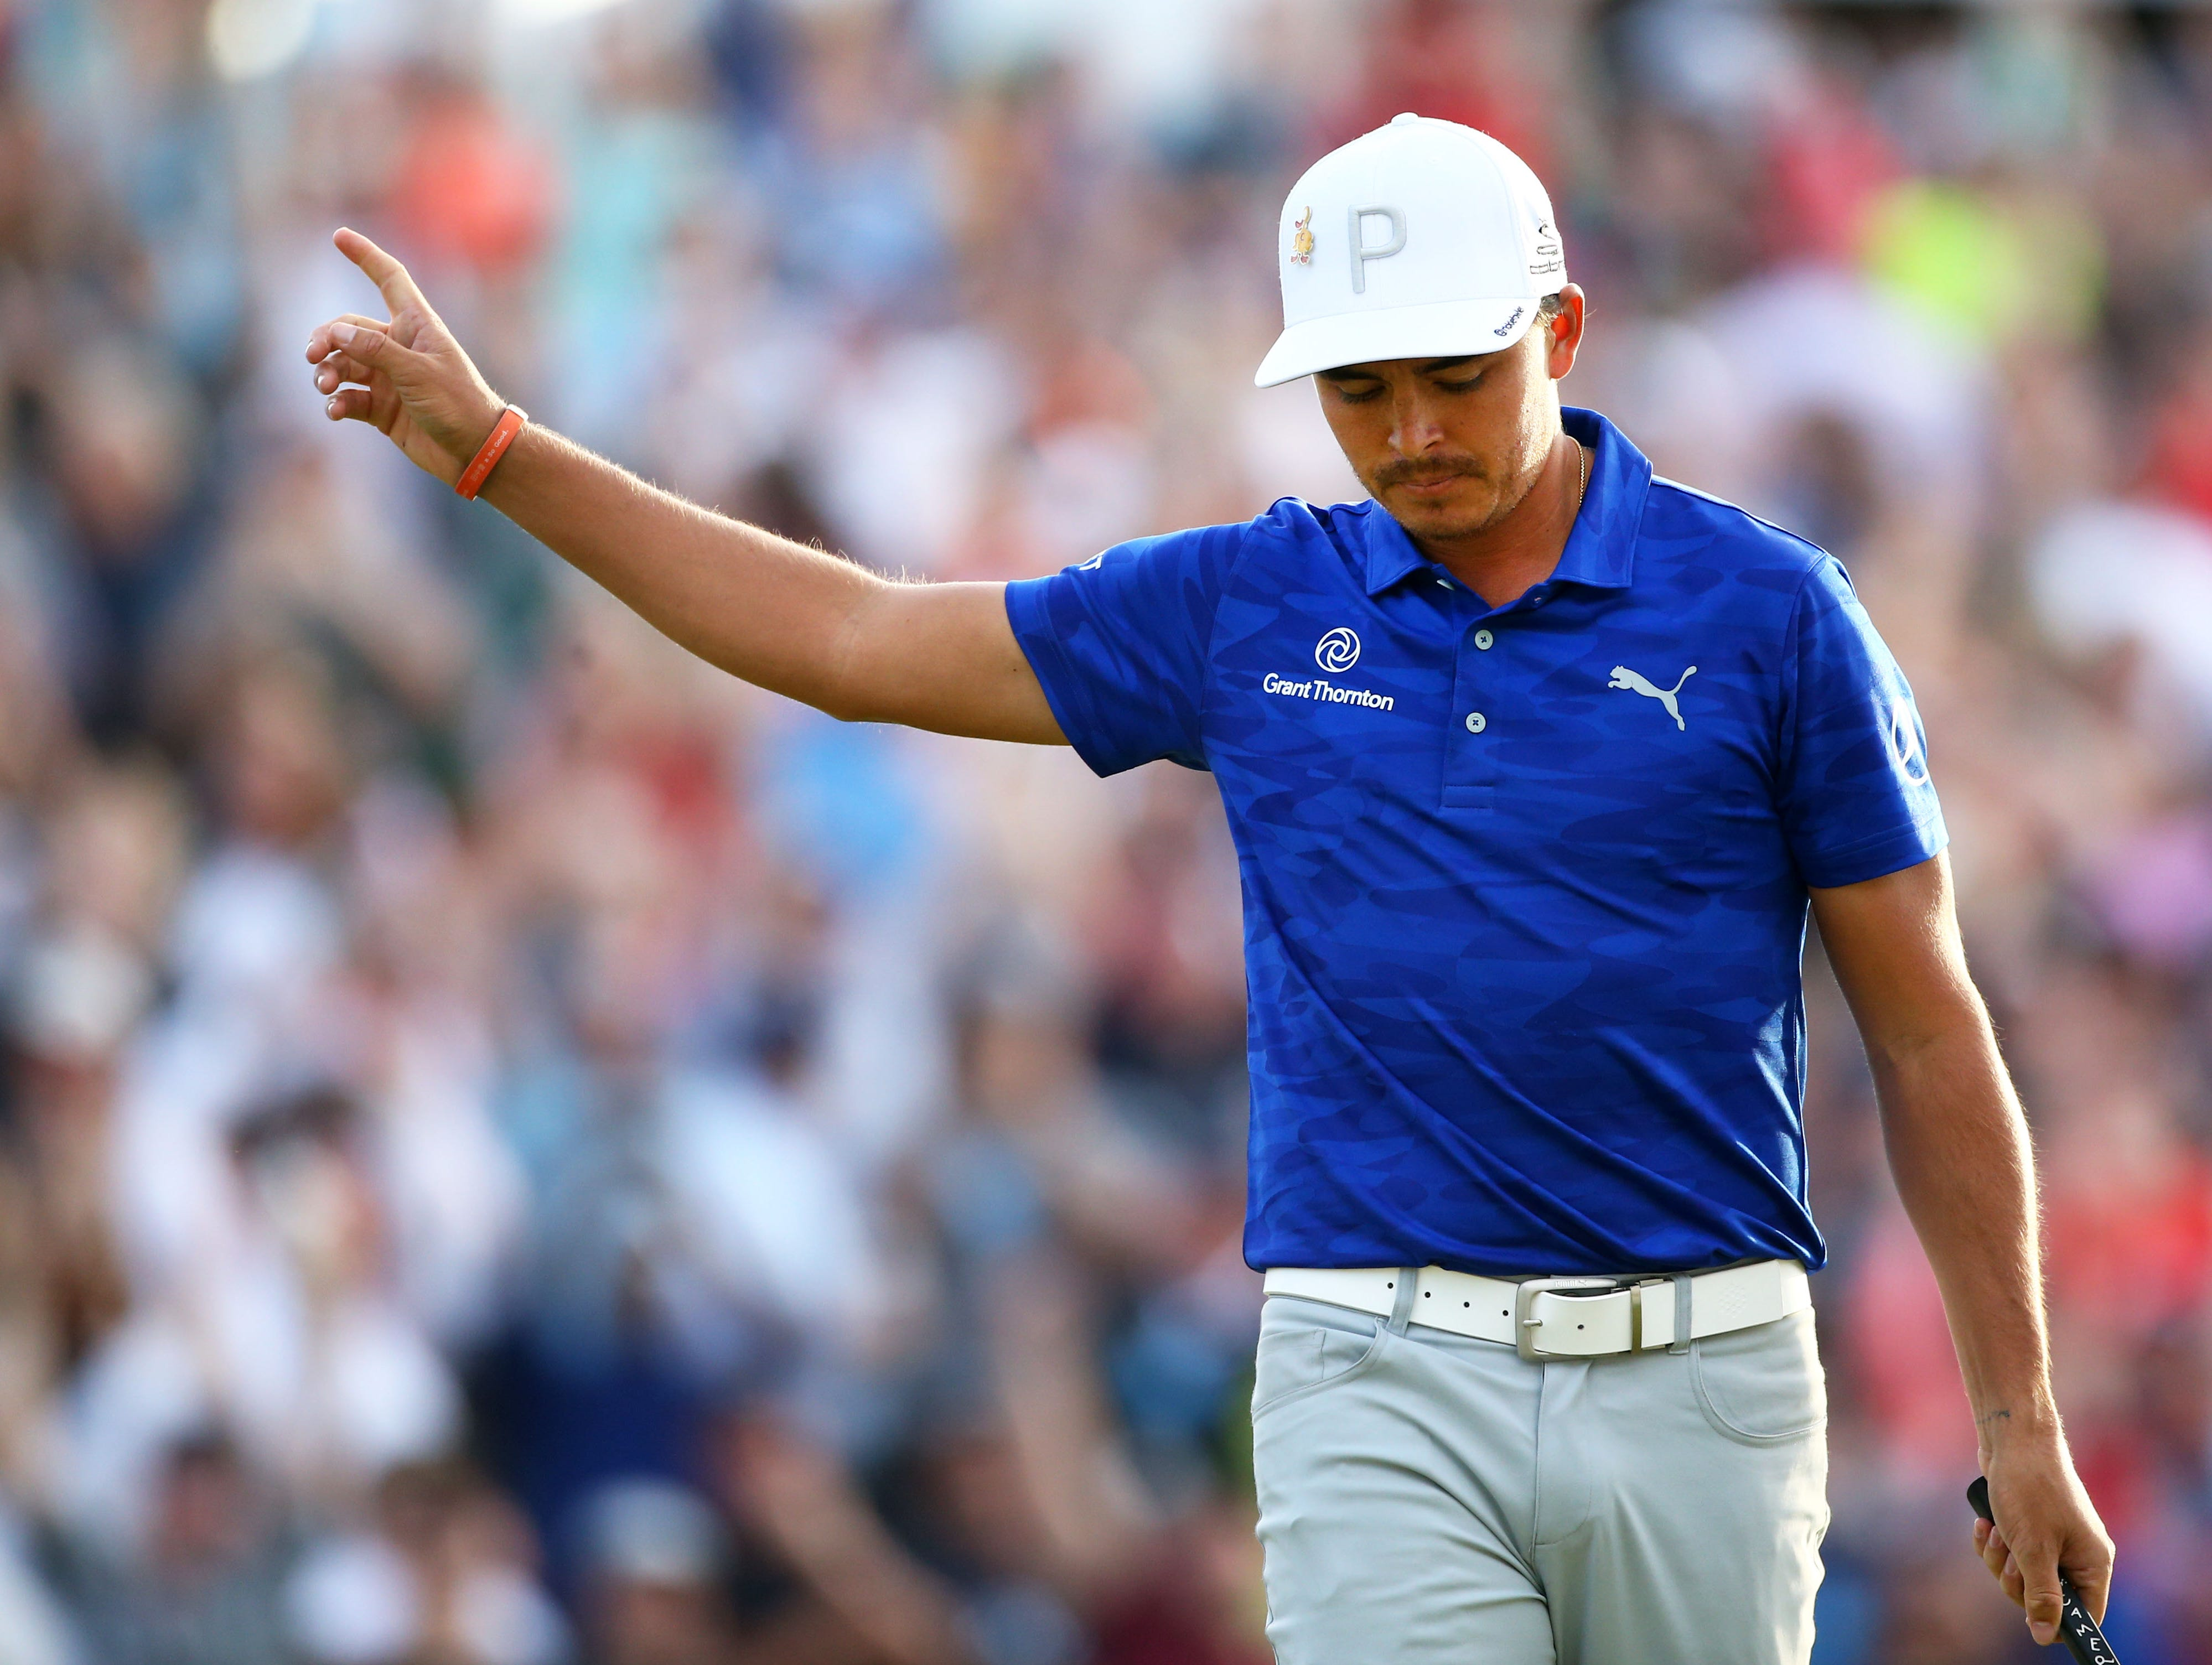 Rickie Fowler reacts after making a birdie on the 16th hole during second round action on Feb. 1 during the Waste Management Phoenix Open at the TPC Scottsdale Stadium Course.